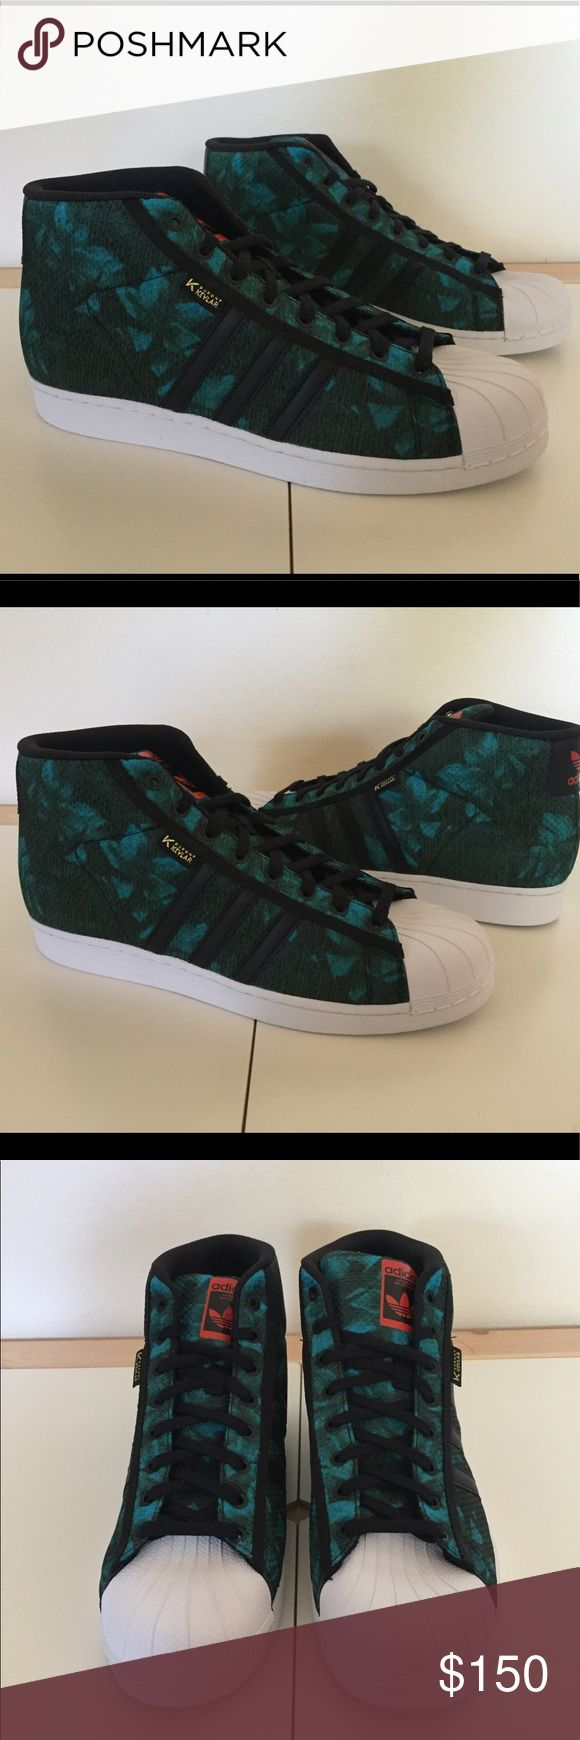 RARE Adidas Pro Mode DuPont Kevlar Sneakers Sz 13 Brand : Adidas  Style Code : F37669  Size : Men's 13  Color : Green  VERY RARE SNEAKER  100% AUTHENTIC  Tropical flower print  BRAND NEW.  NO BOX.  NEVER WORN. Adidas Shoes Sneakers